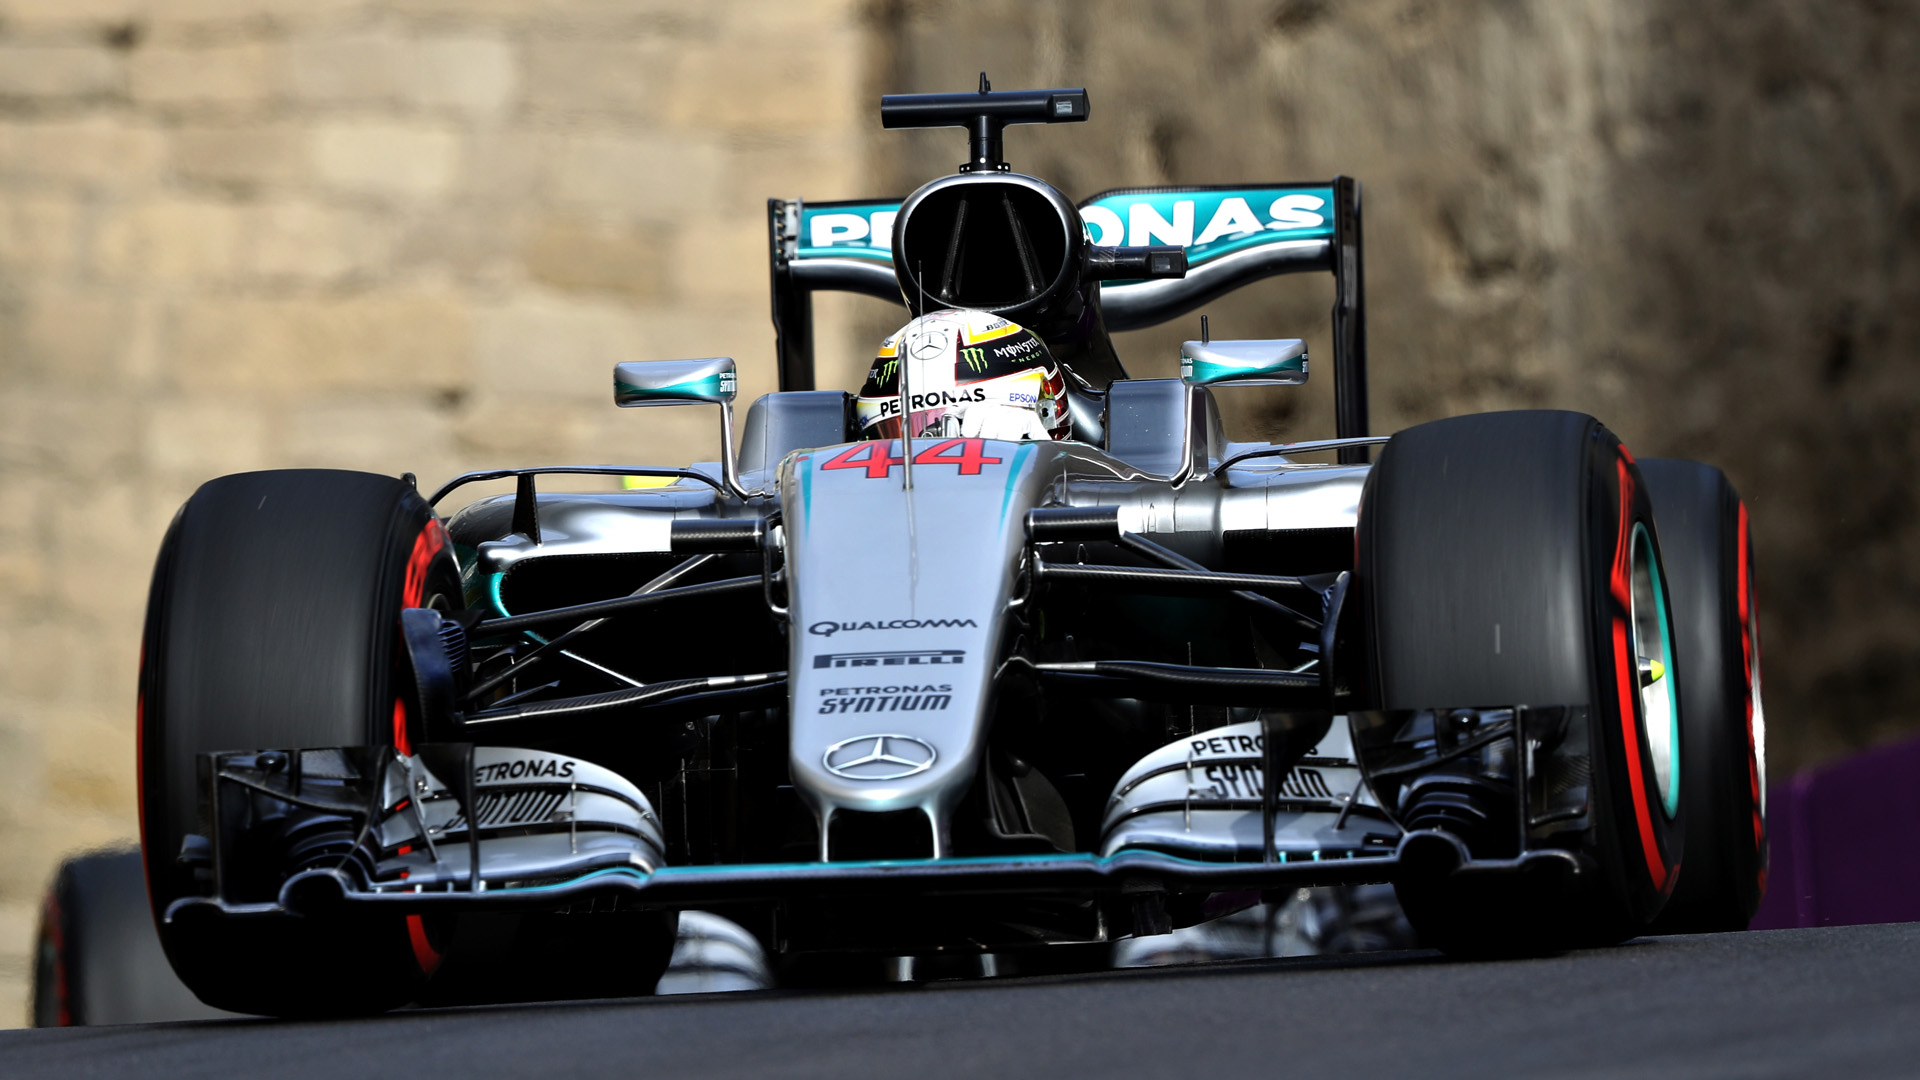 Monaco Grand Prix Practice 1: Hamilton edges out Vettel